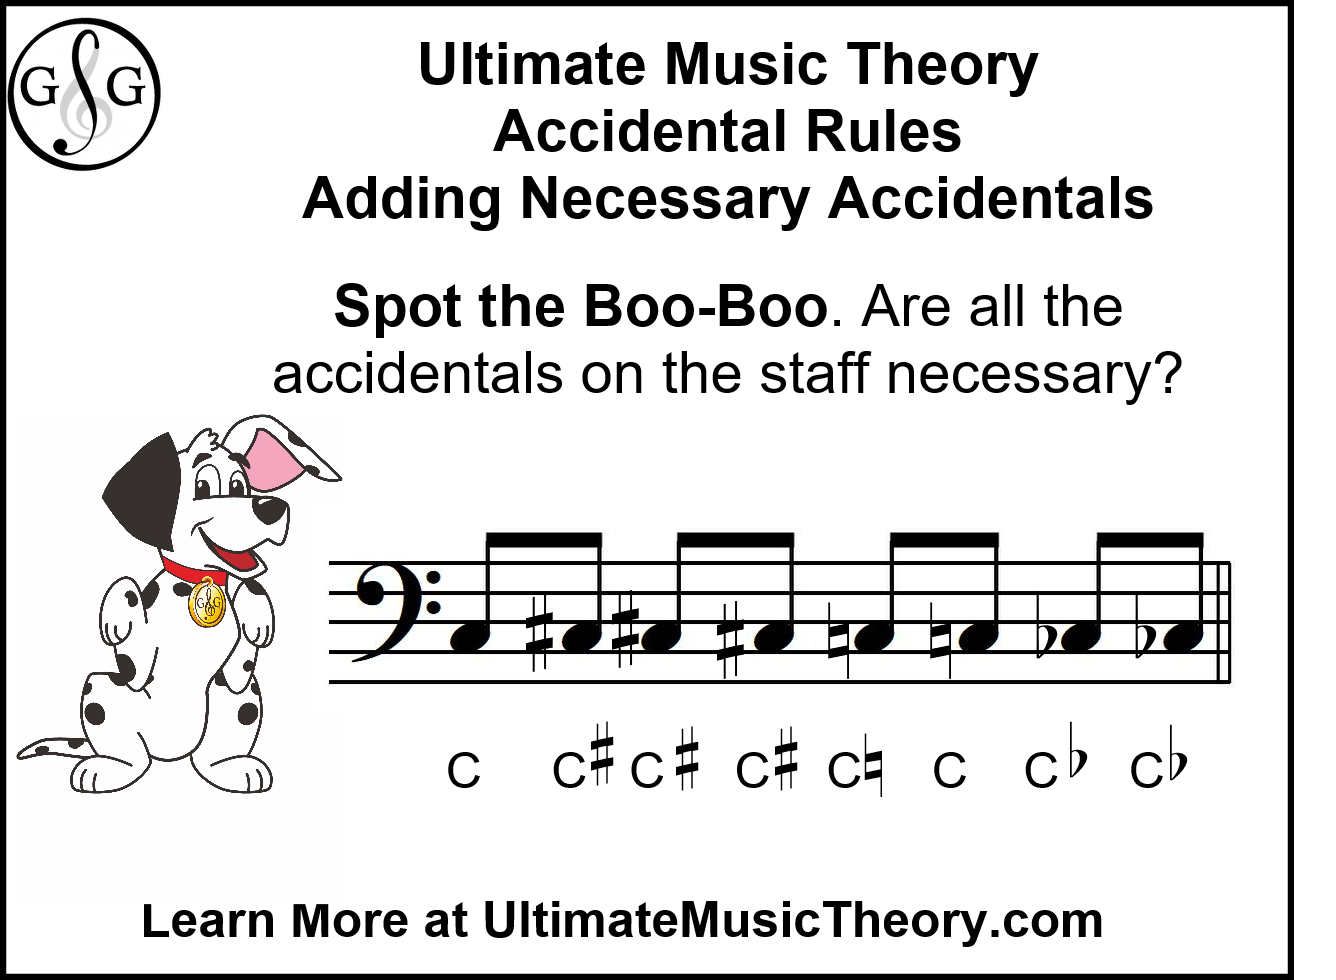 UMT Adding Necessary Accidentals - Spot the Boo Boo